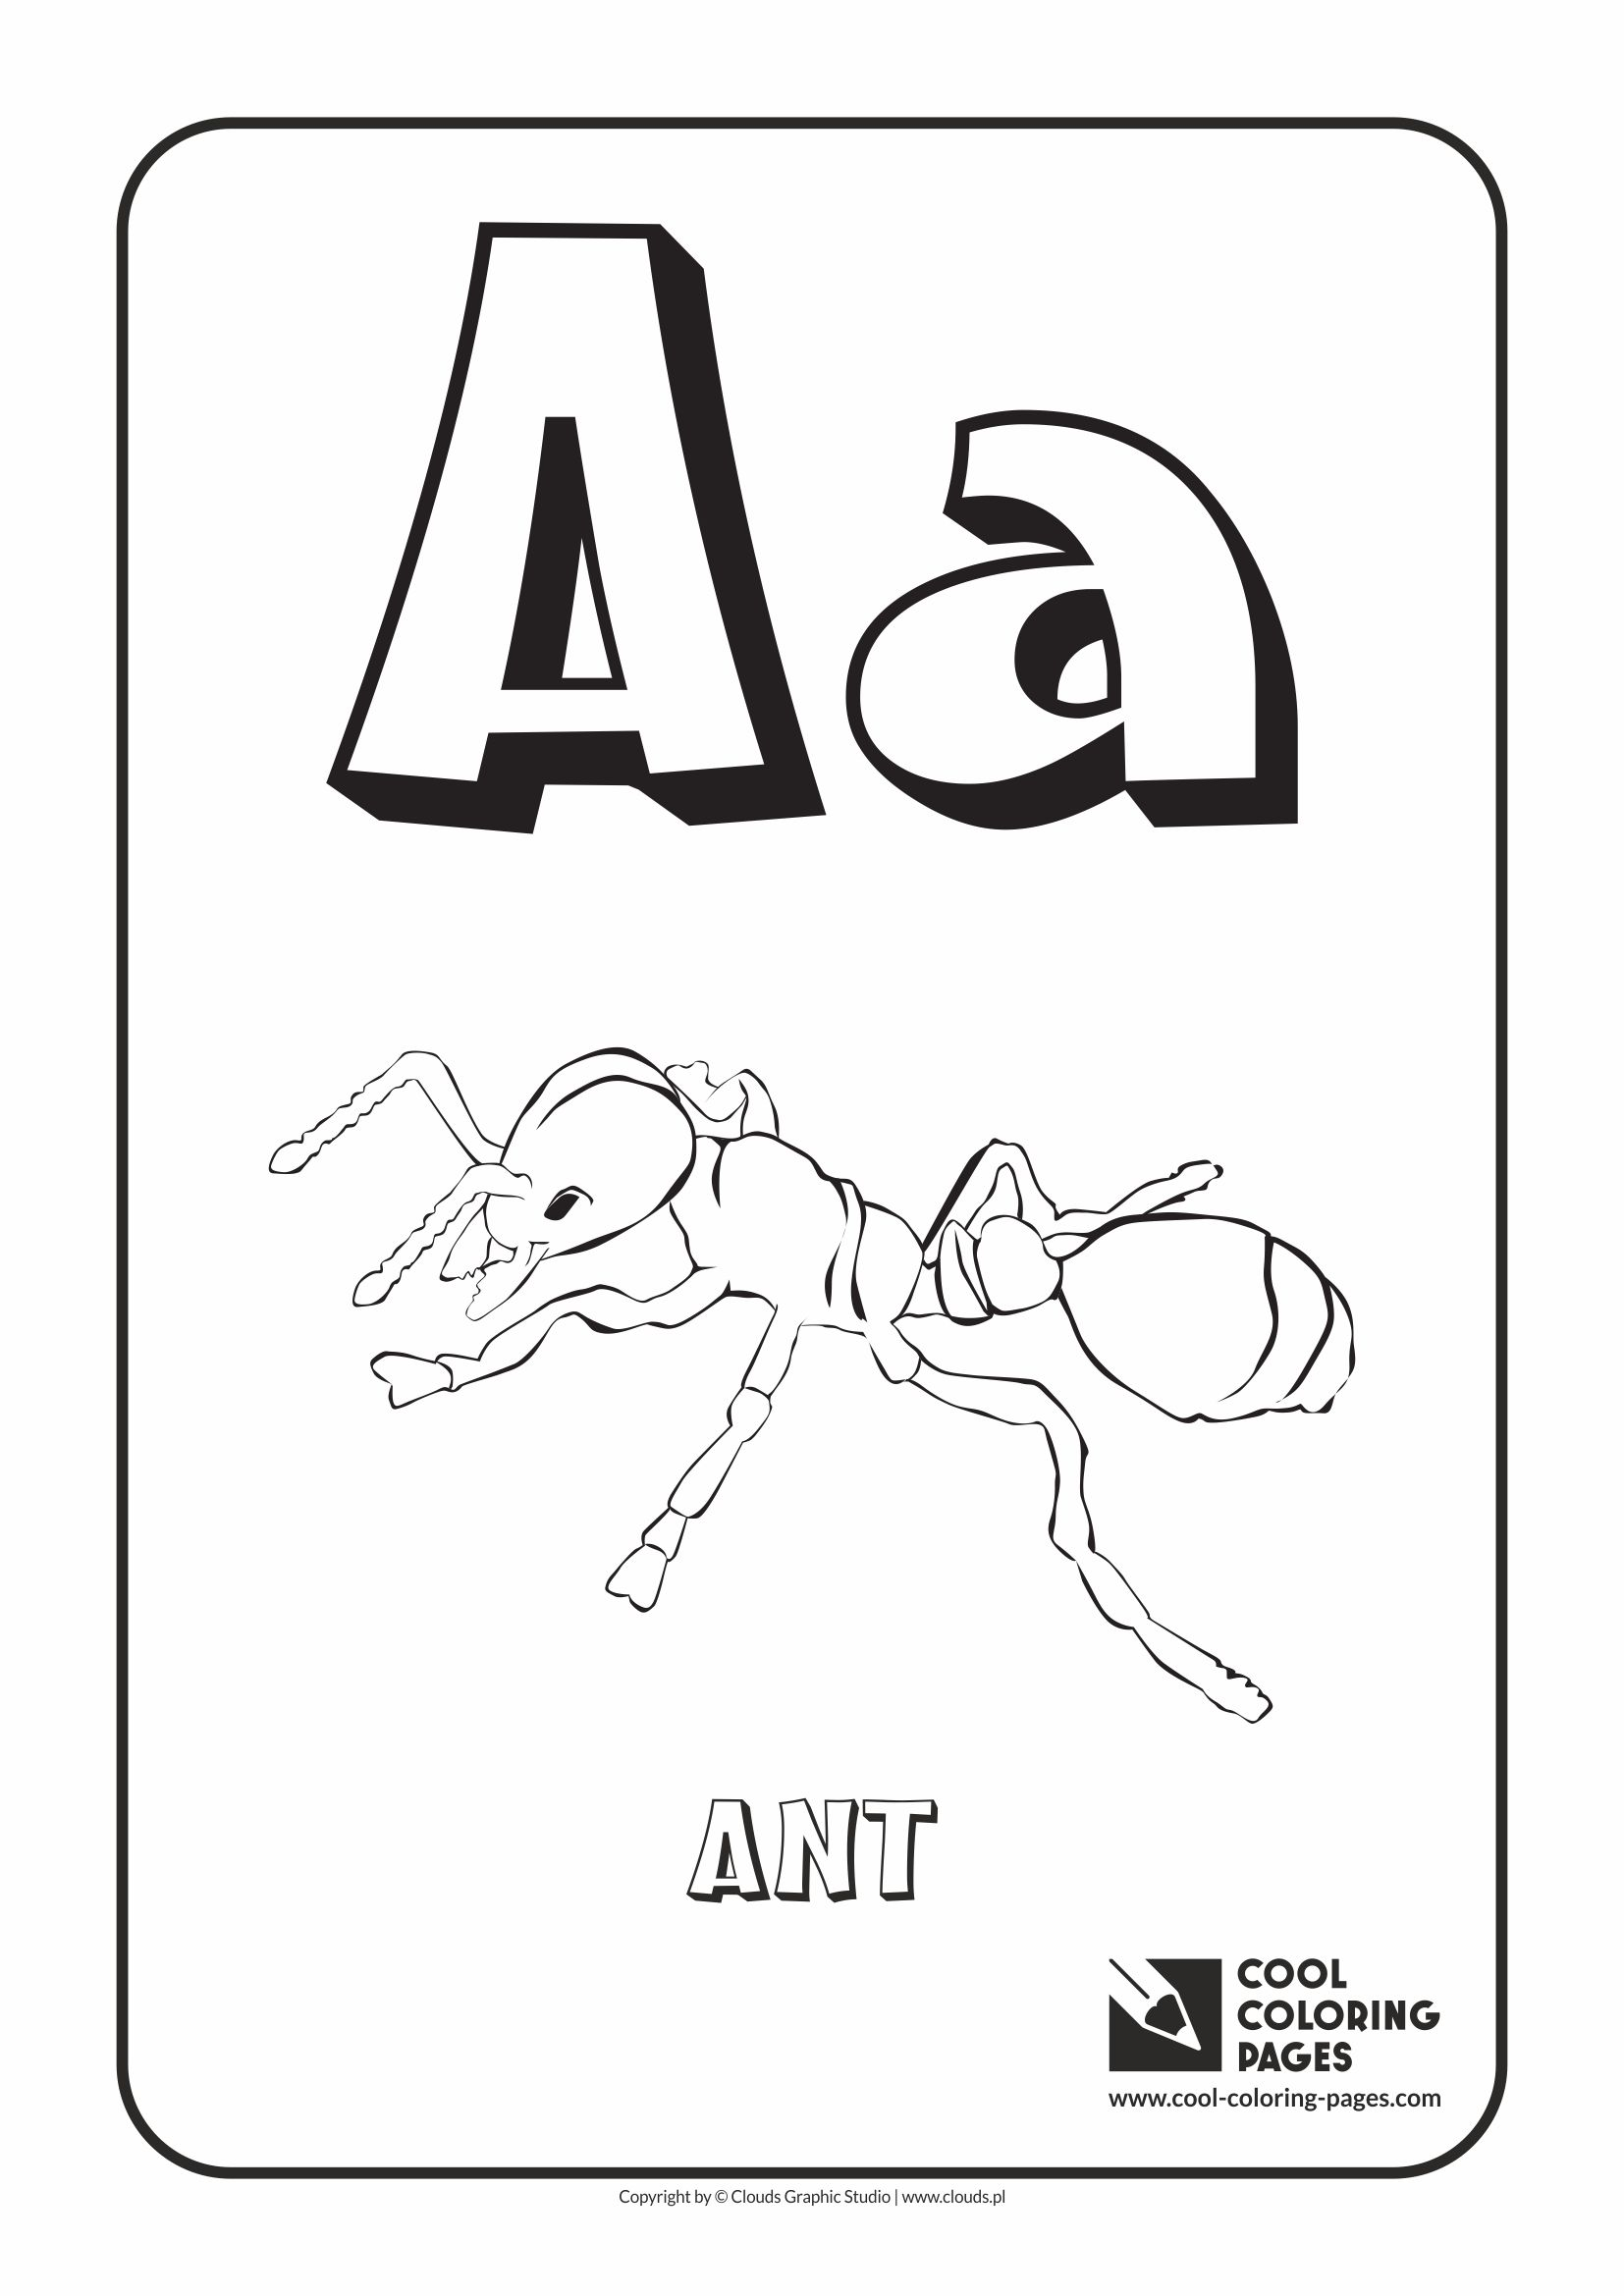 Coloring pages for alphabet - Cool Coloring Pages Alphabet Letter A Coloring Page With Letter A